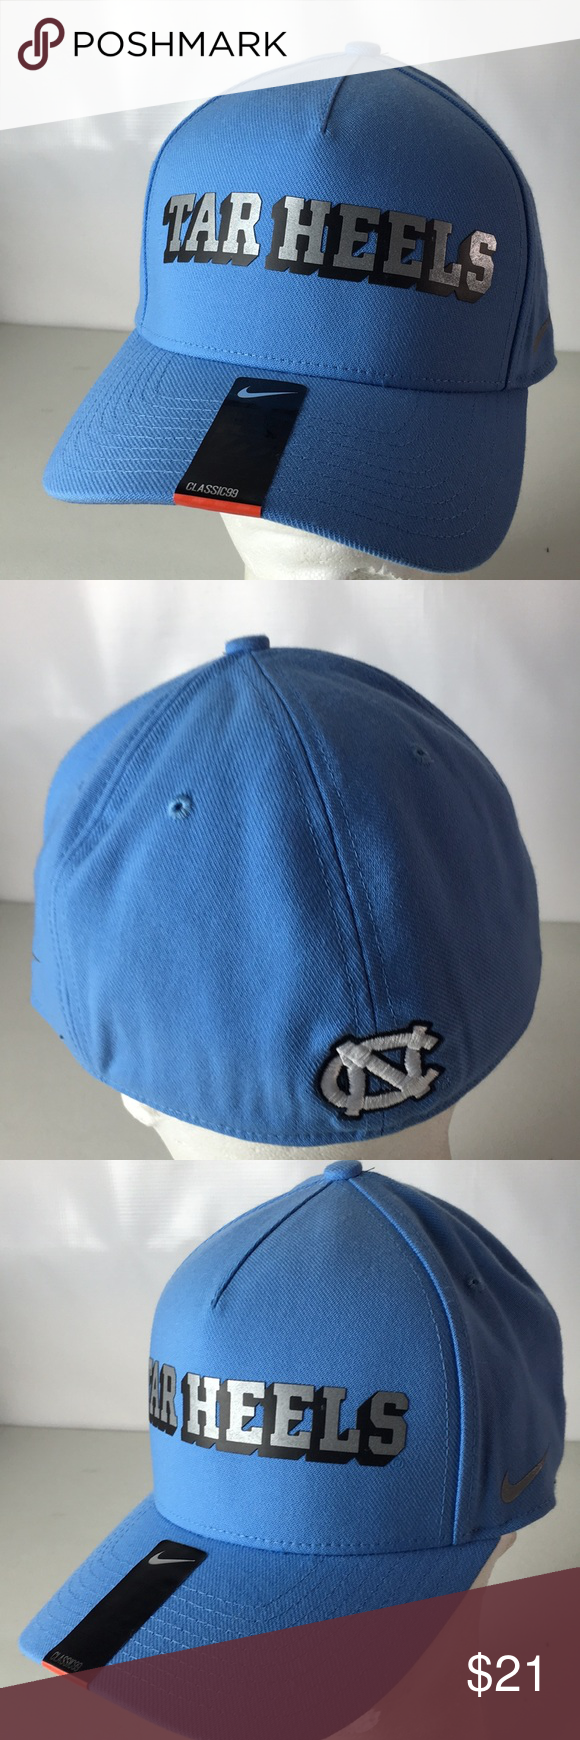 best website 1f2f3 90953 Nike North Carolina Tar Heels Hat NCAA Spellout New Nike Dri-Fit flex  Stretch Fit